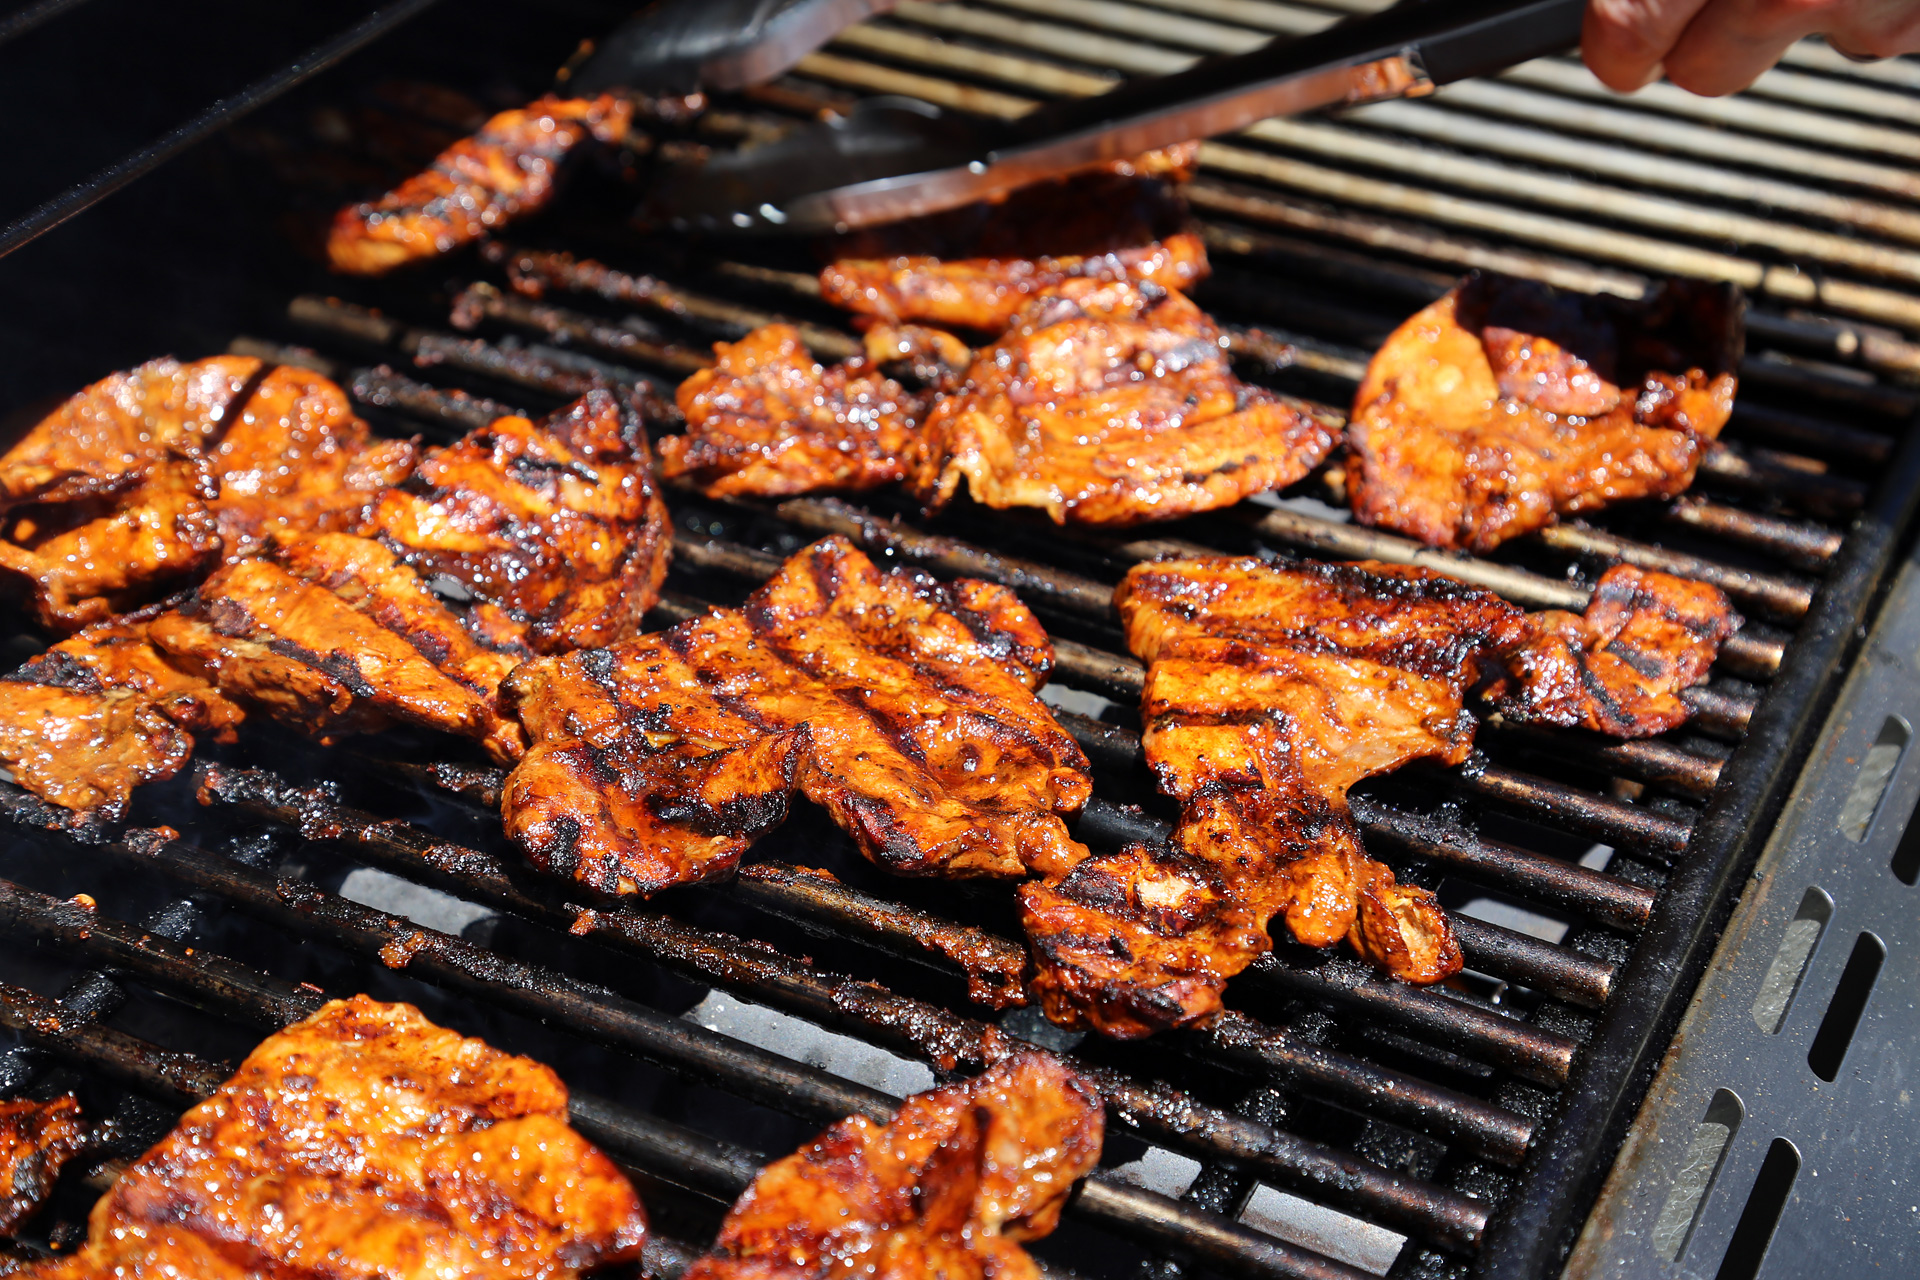 Grill until it begins to char and caramelize, turning once, about 10 to 15 minutes.